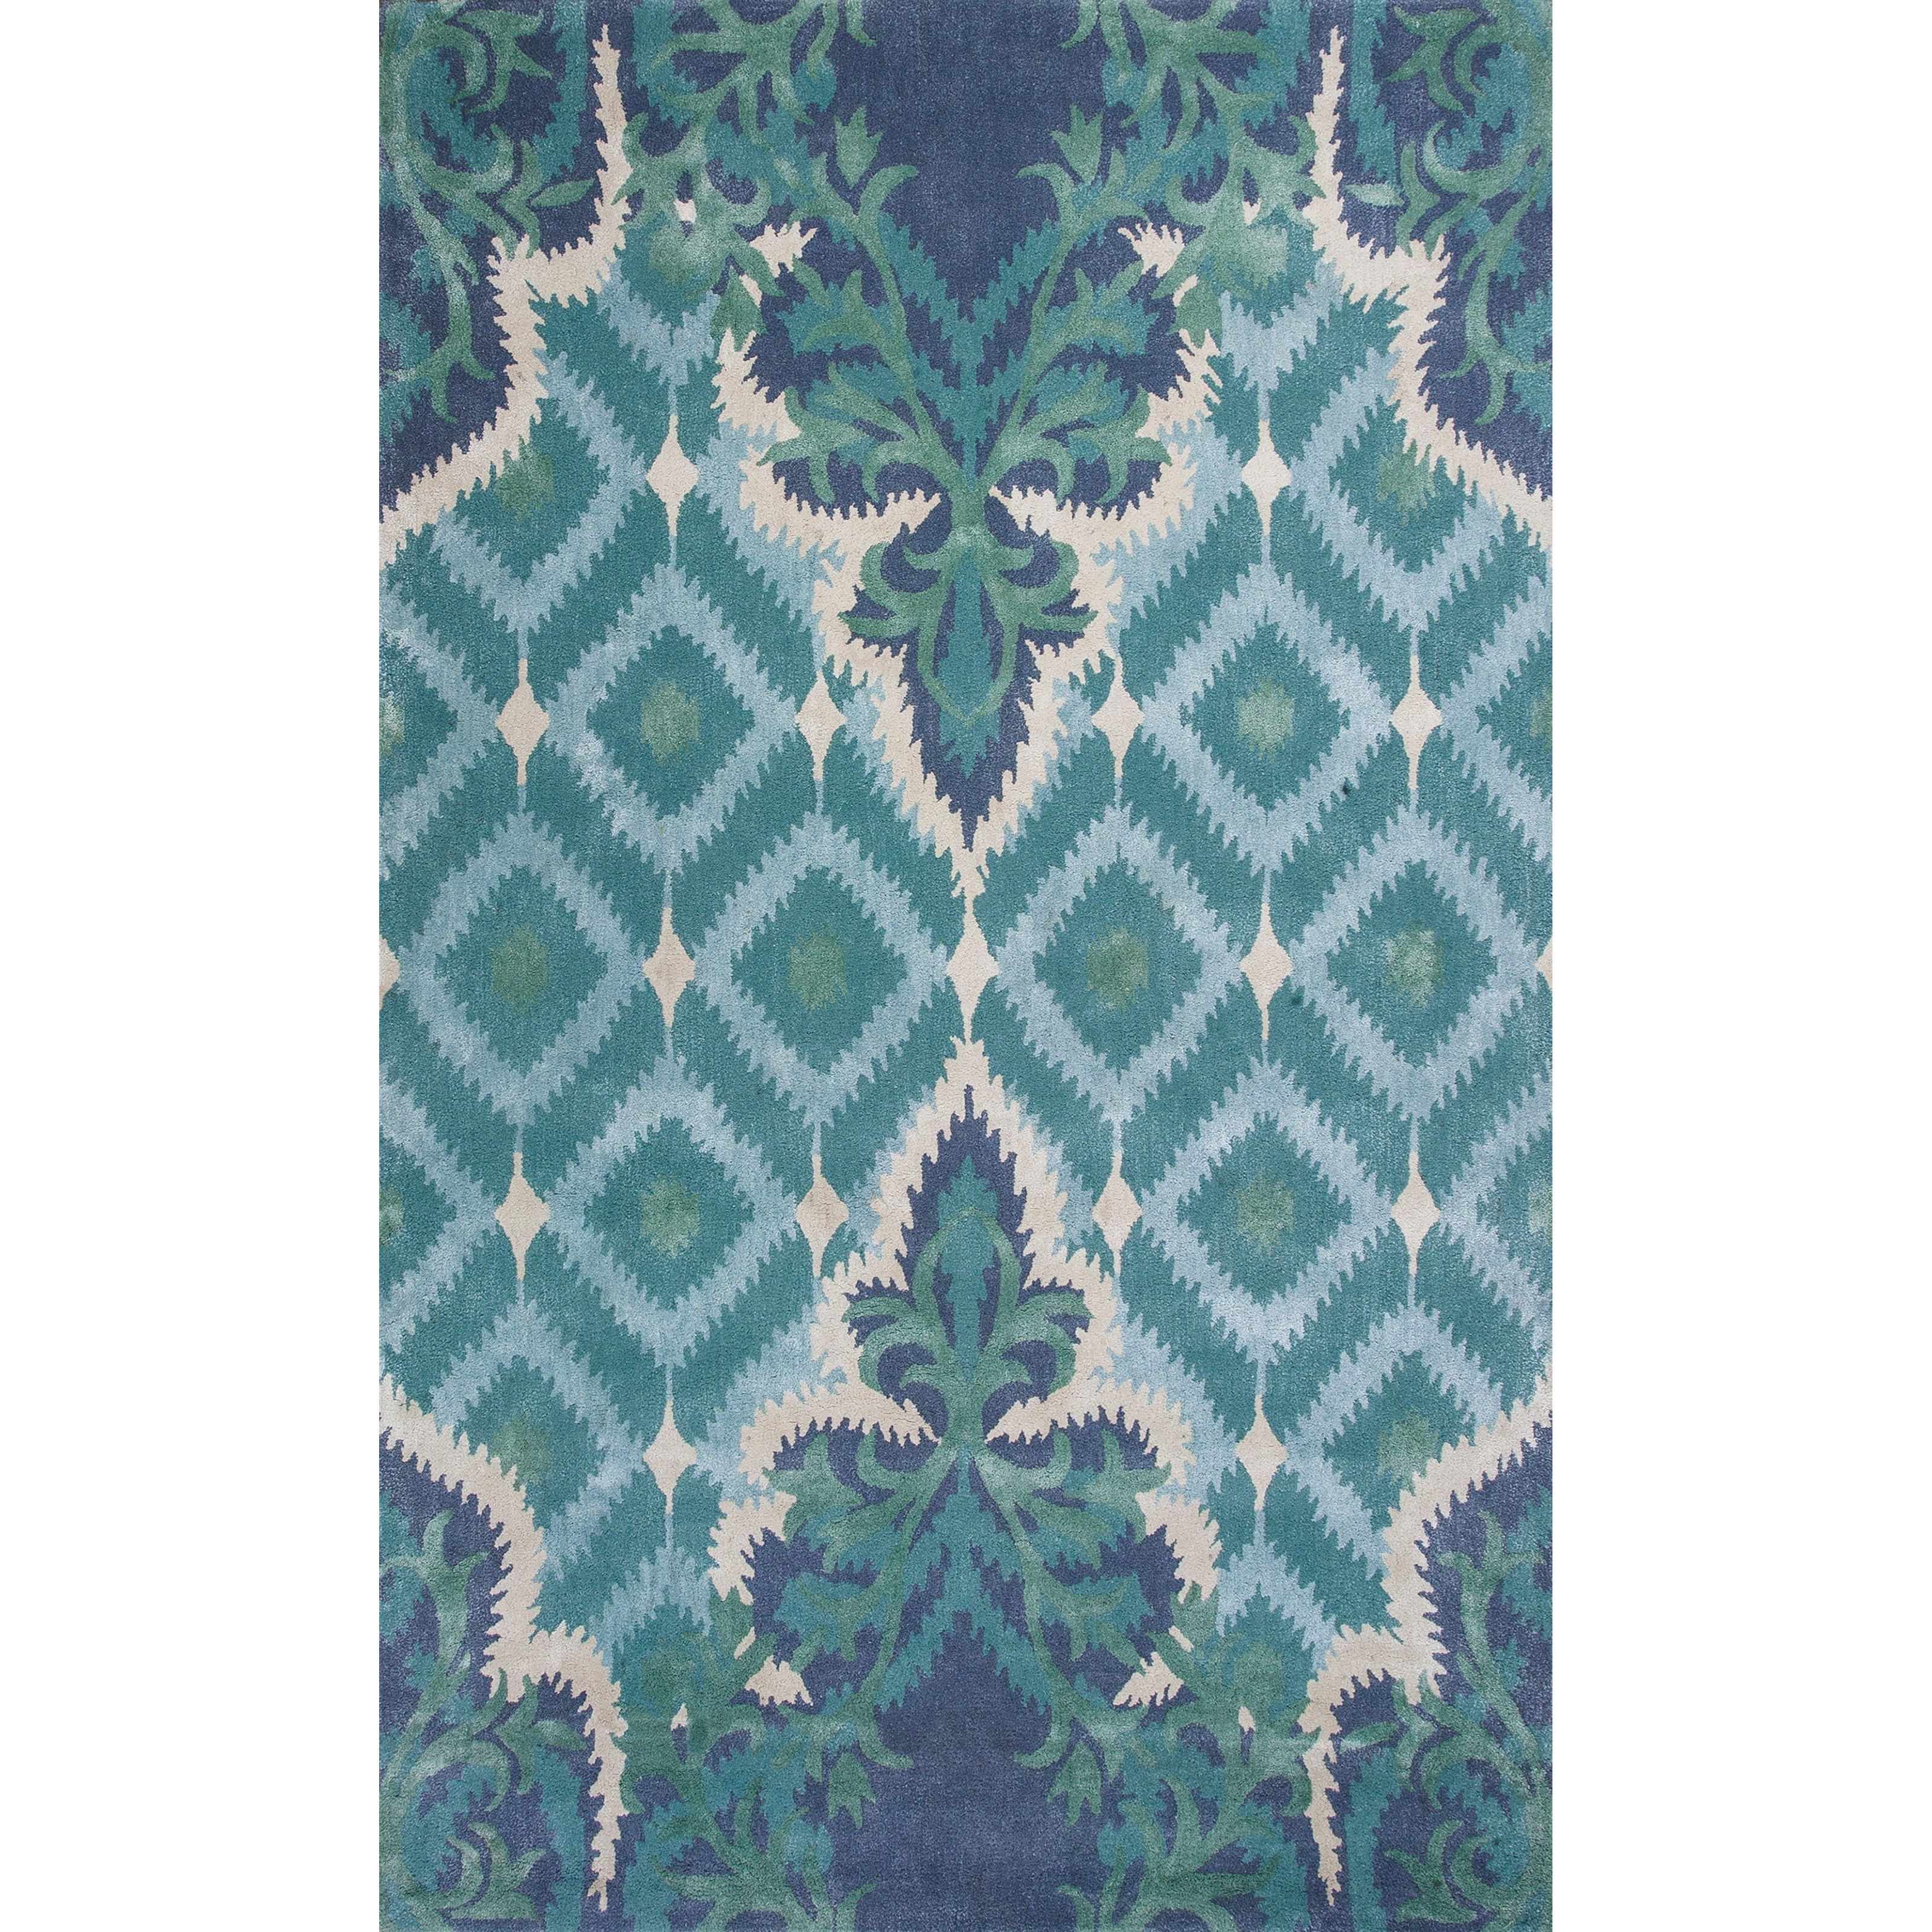 9' X 13' Blue/Green Opulence Area Rug